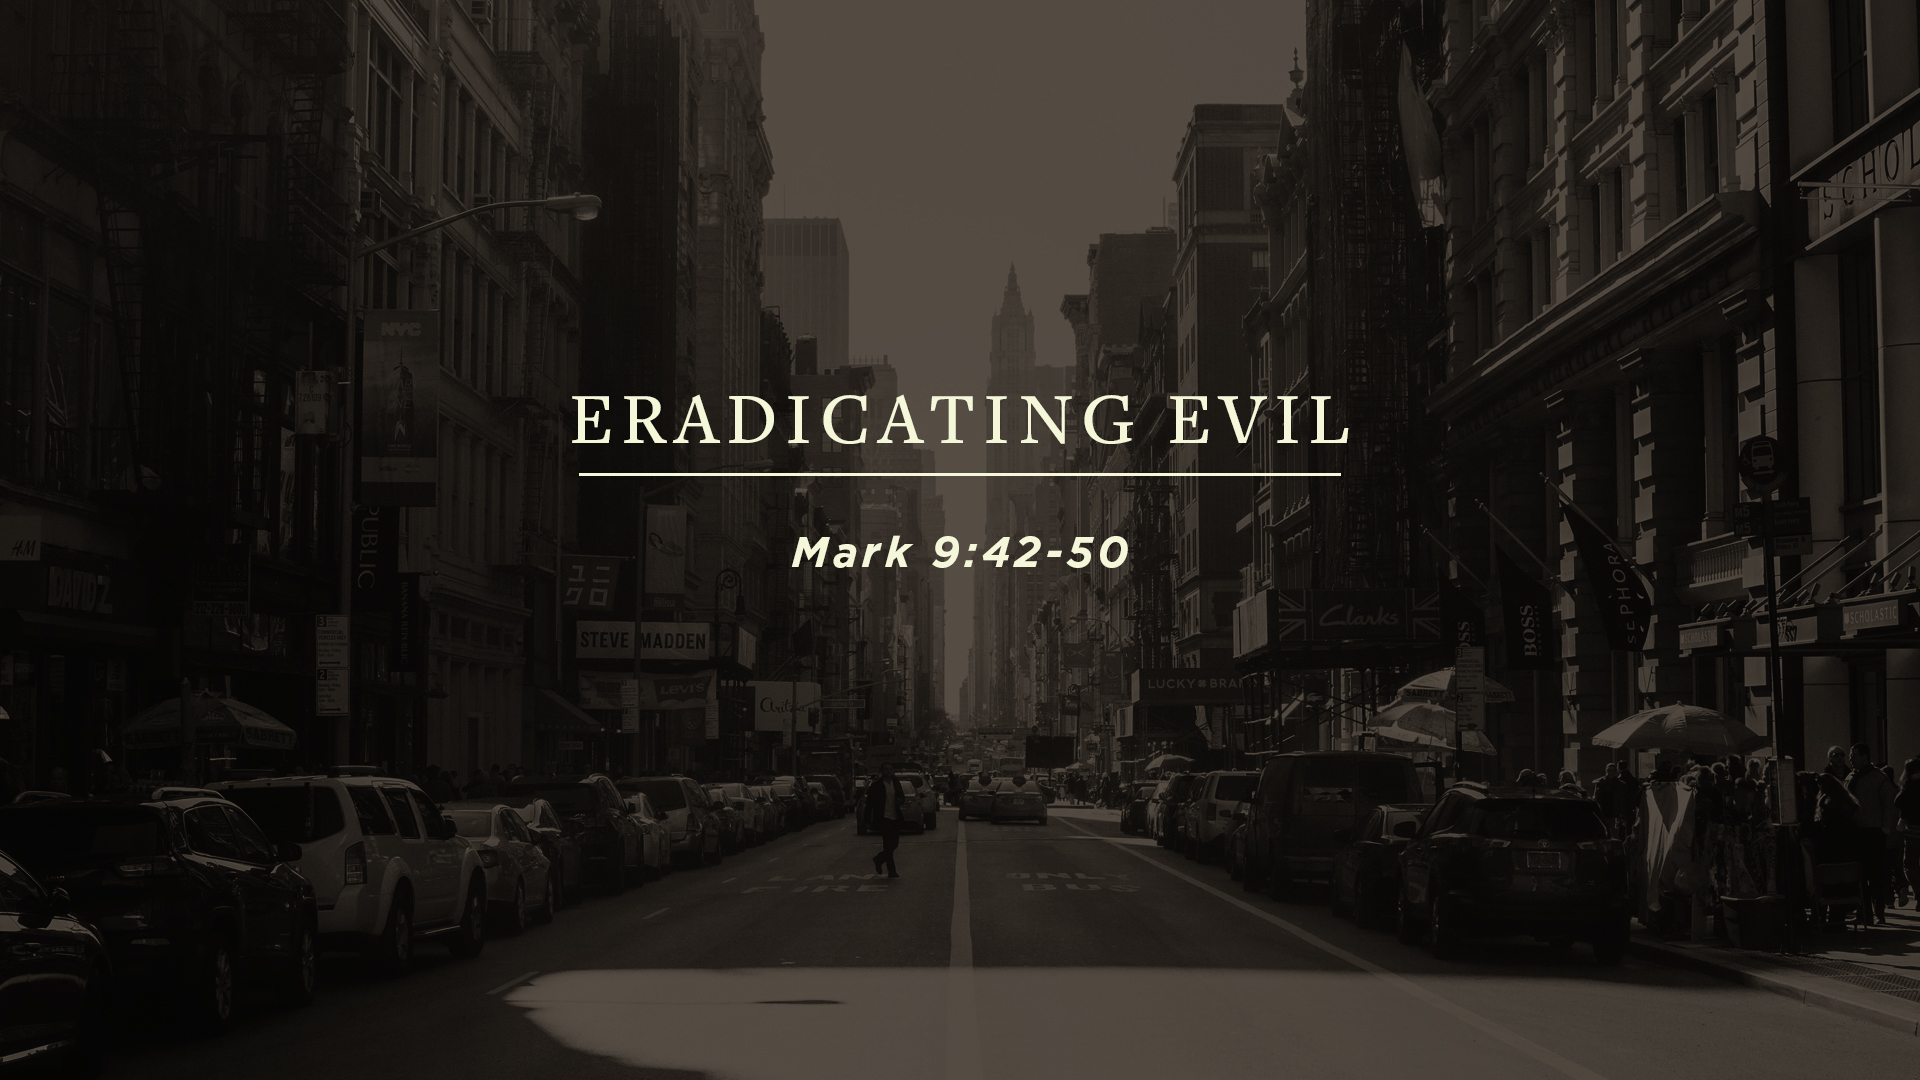 Eradicating Evil